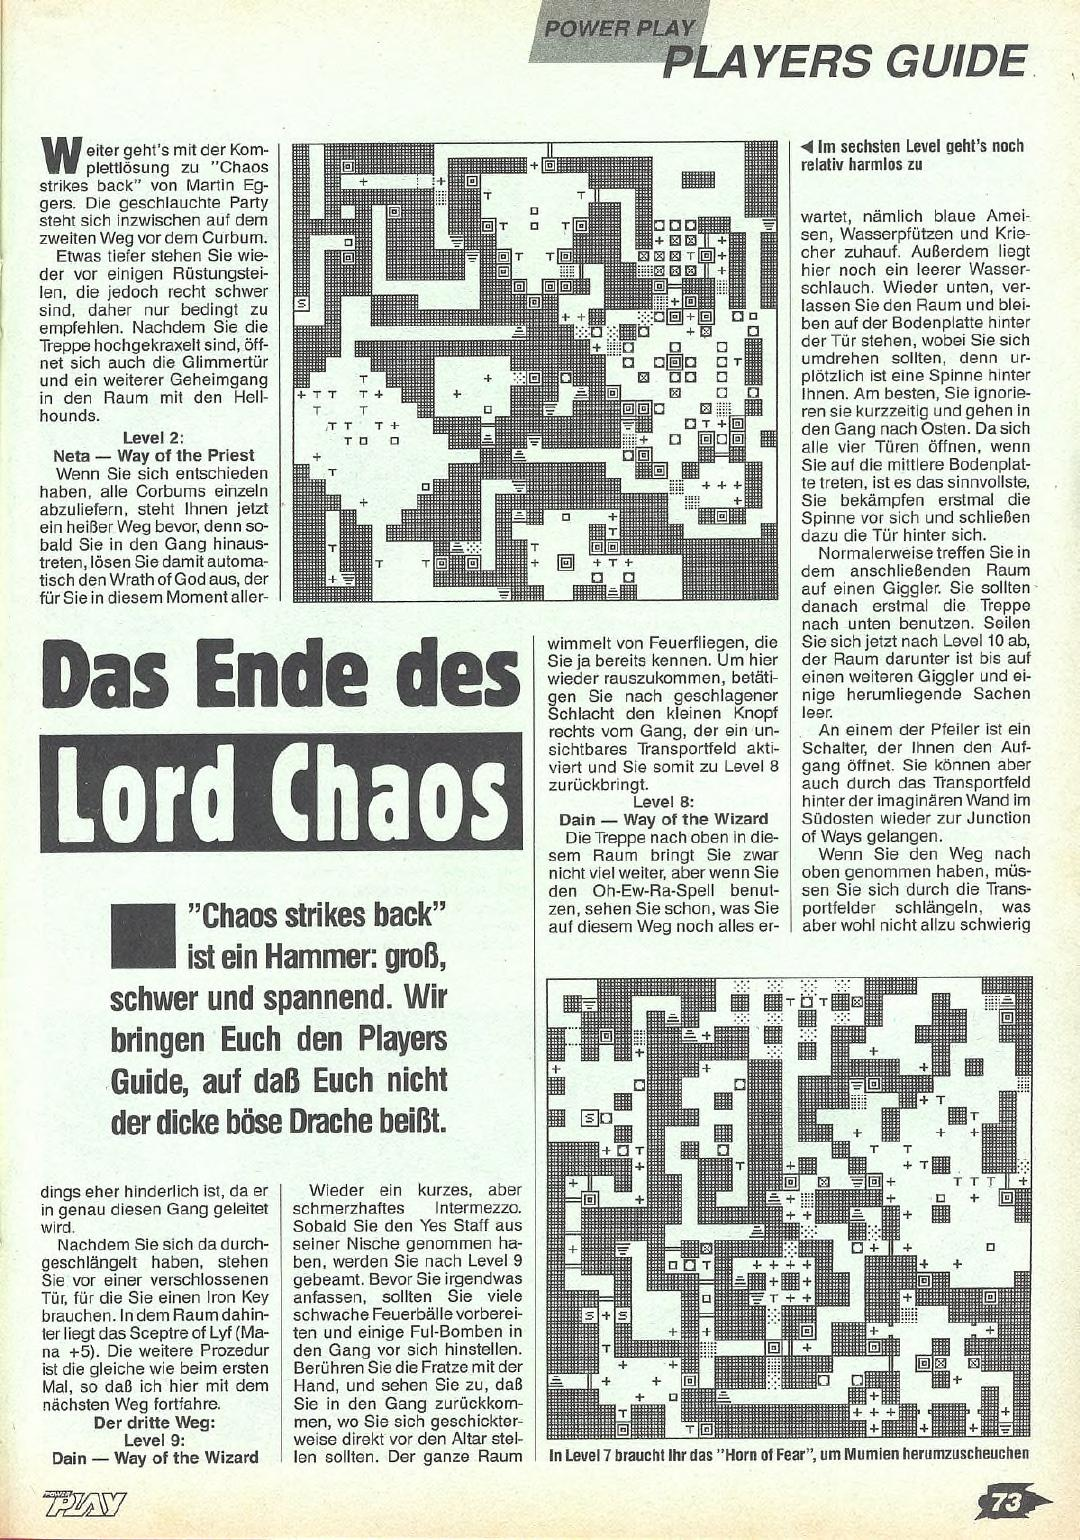 Chaos Strikes Back Guide published in German magazine 'Power Play', May 1990, Page 73